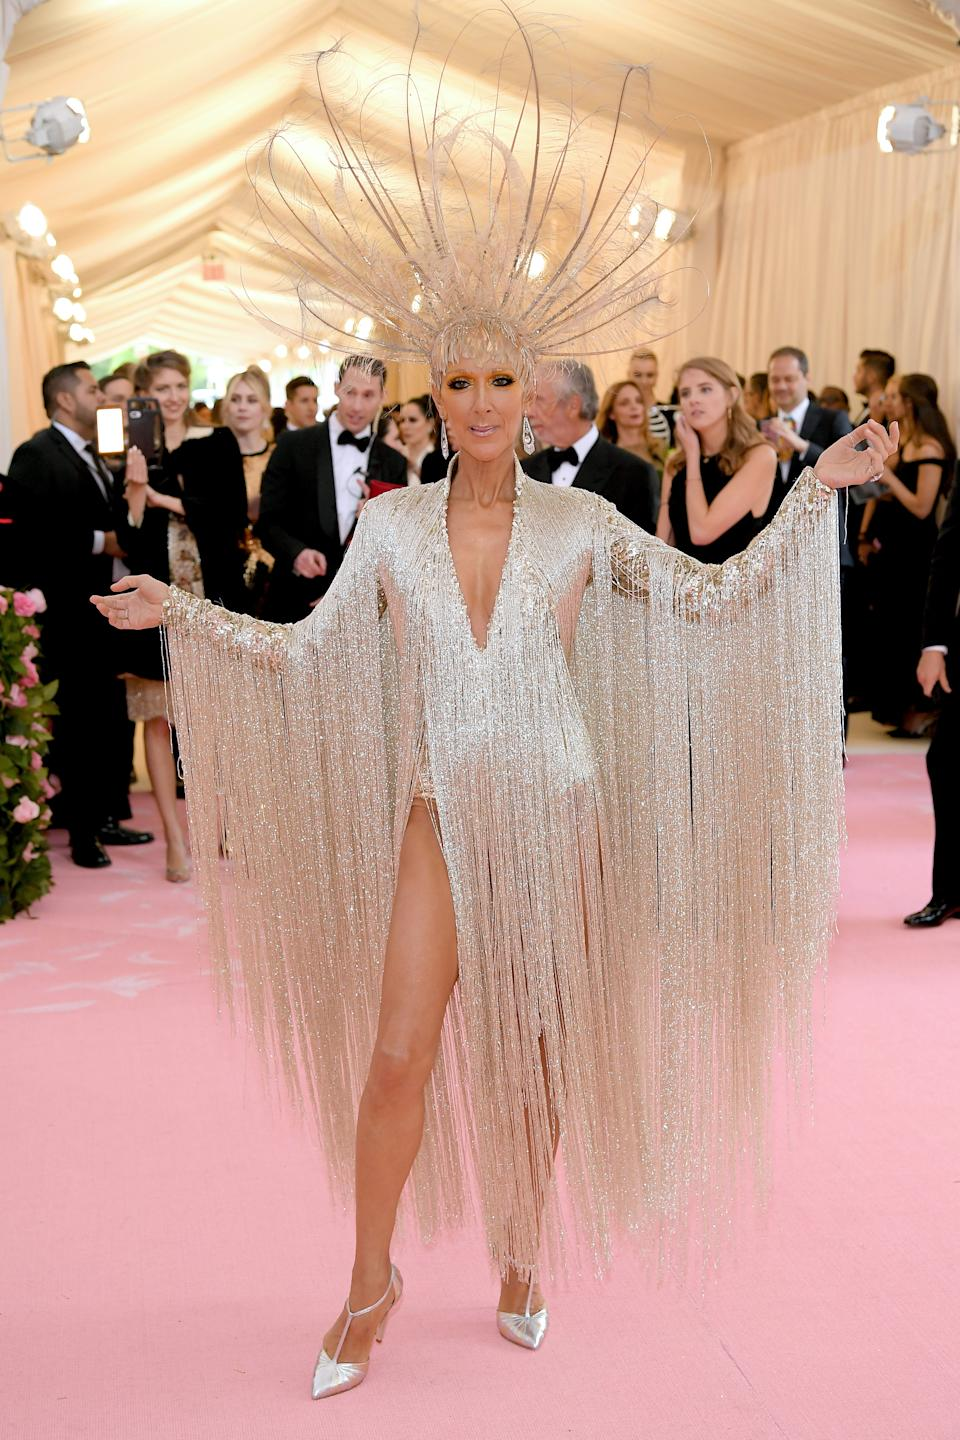 The music icon arrived to the Met in a sparkly ensemble that could have been straight from her Las Vegas residency wardrobe. Celine's fringe Oscar de la Renta look took 3,000 hours to create by 52 embroiderers and weighed over 11kg. Photo: Getty Images